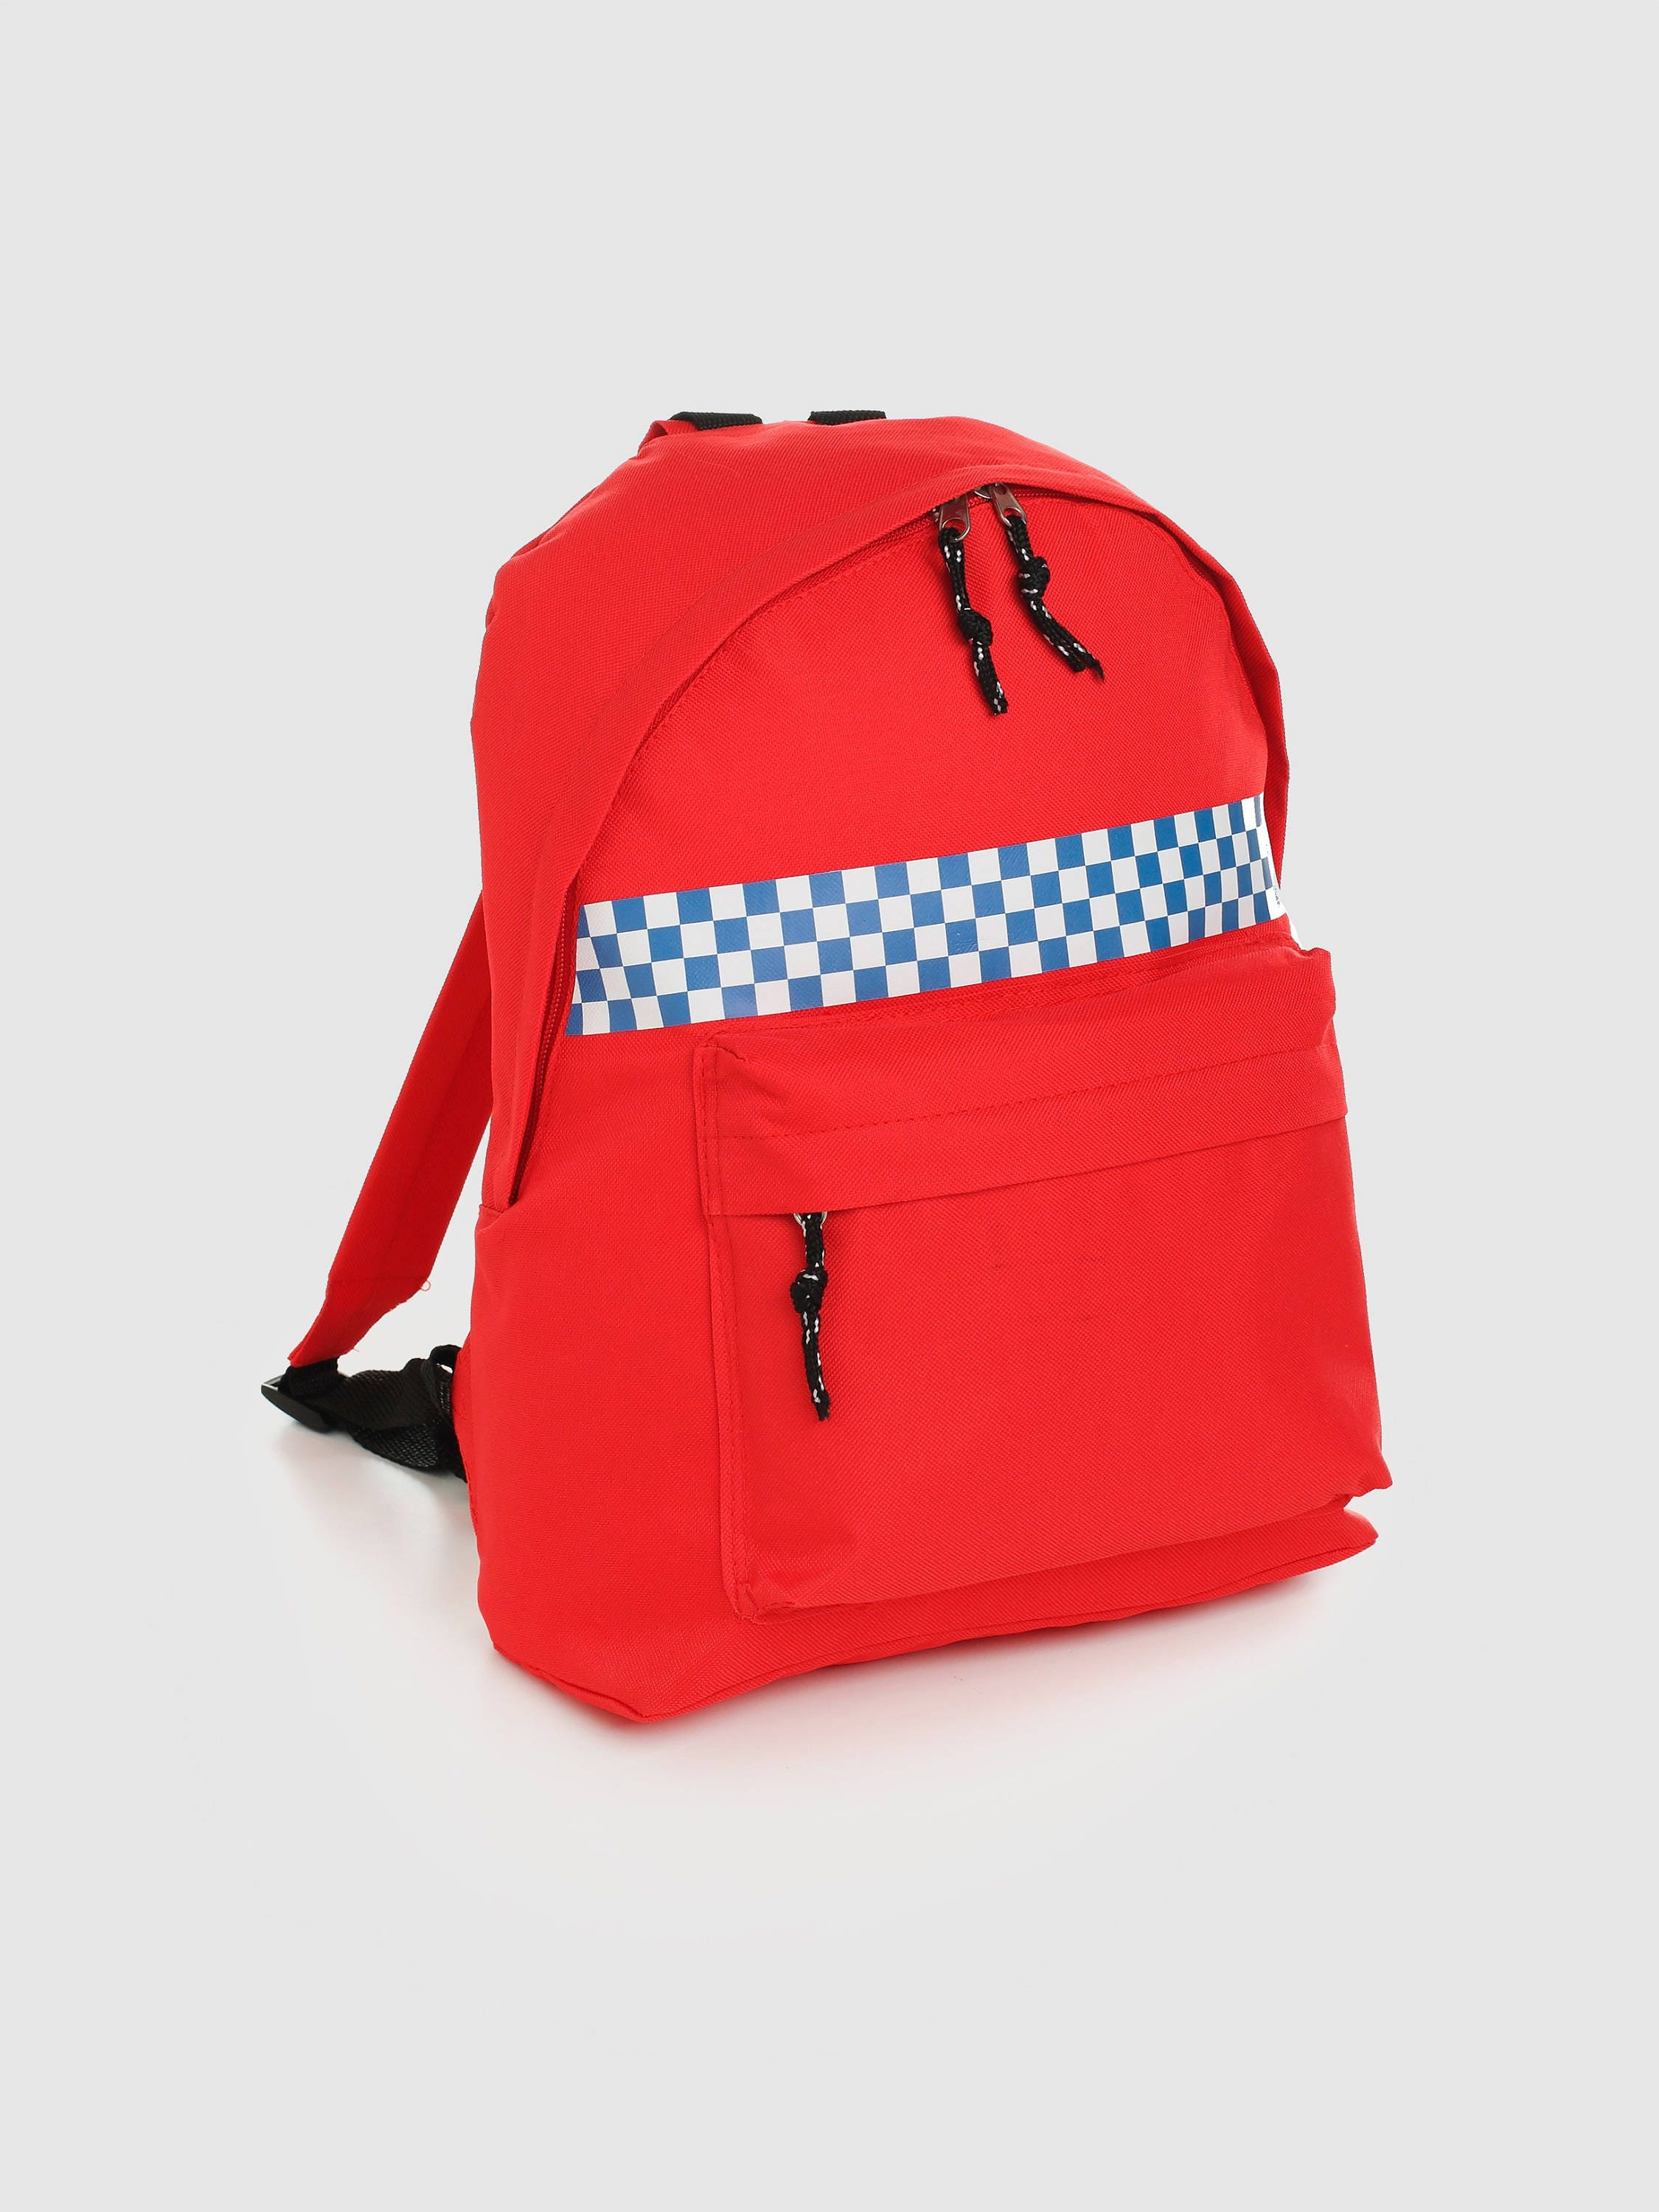 aa1de9762d81 Buy tumblr school backpacks and get free shipping on .